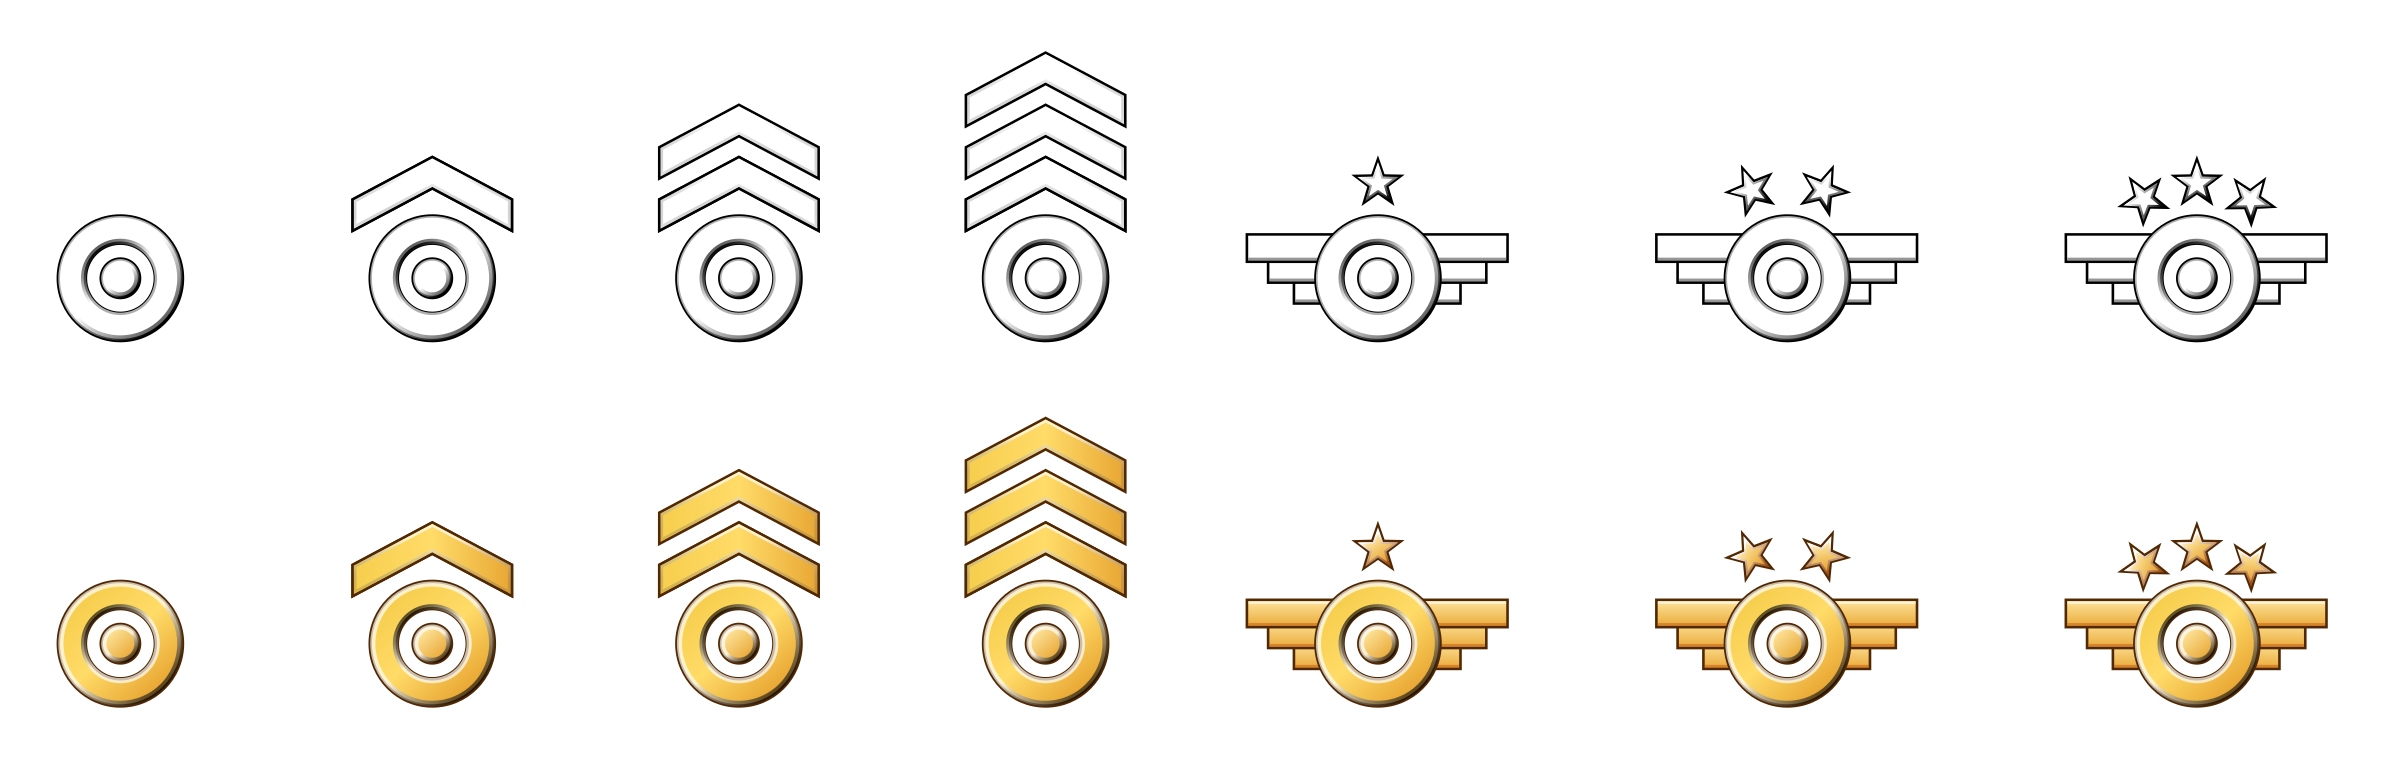 Military. Army clipart badges